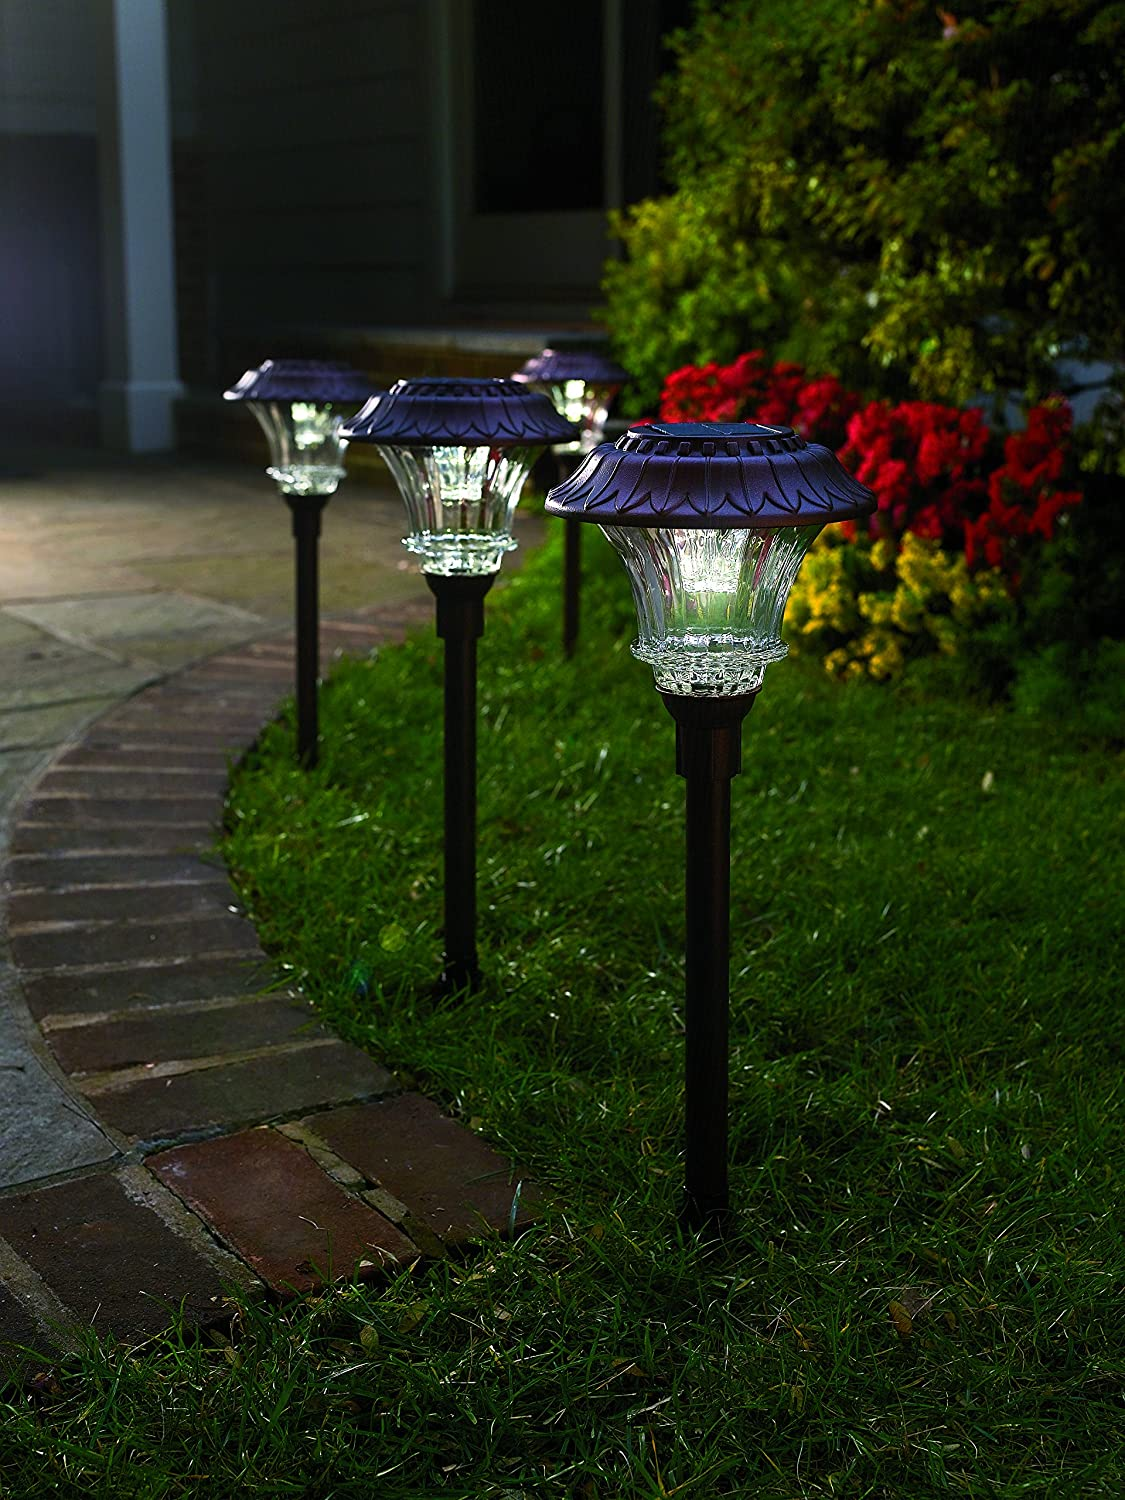 Amazon set of 4 solar garden path lights glass and powder amazon set of 4 solar garden path lights glass and powder coated cast aluminum metal 6 bright leds per light 50 lumens output per led workwithnaturefo